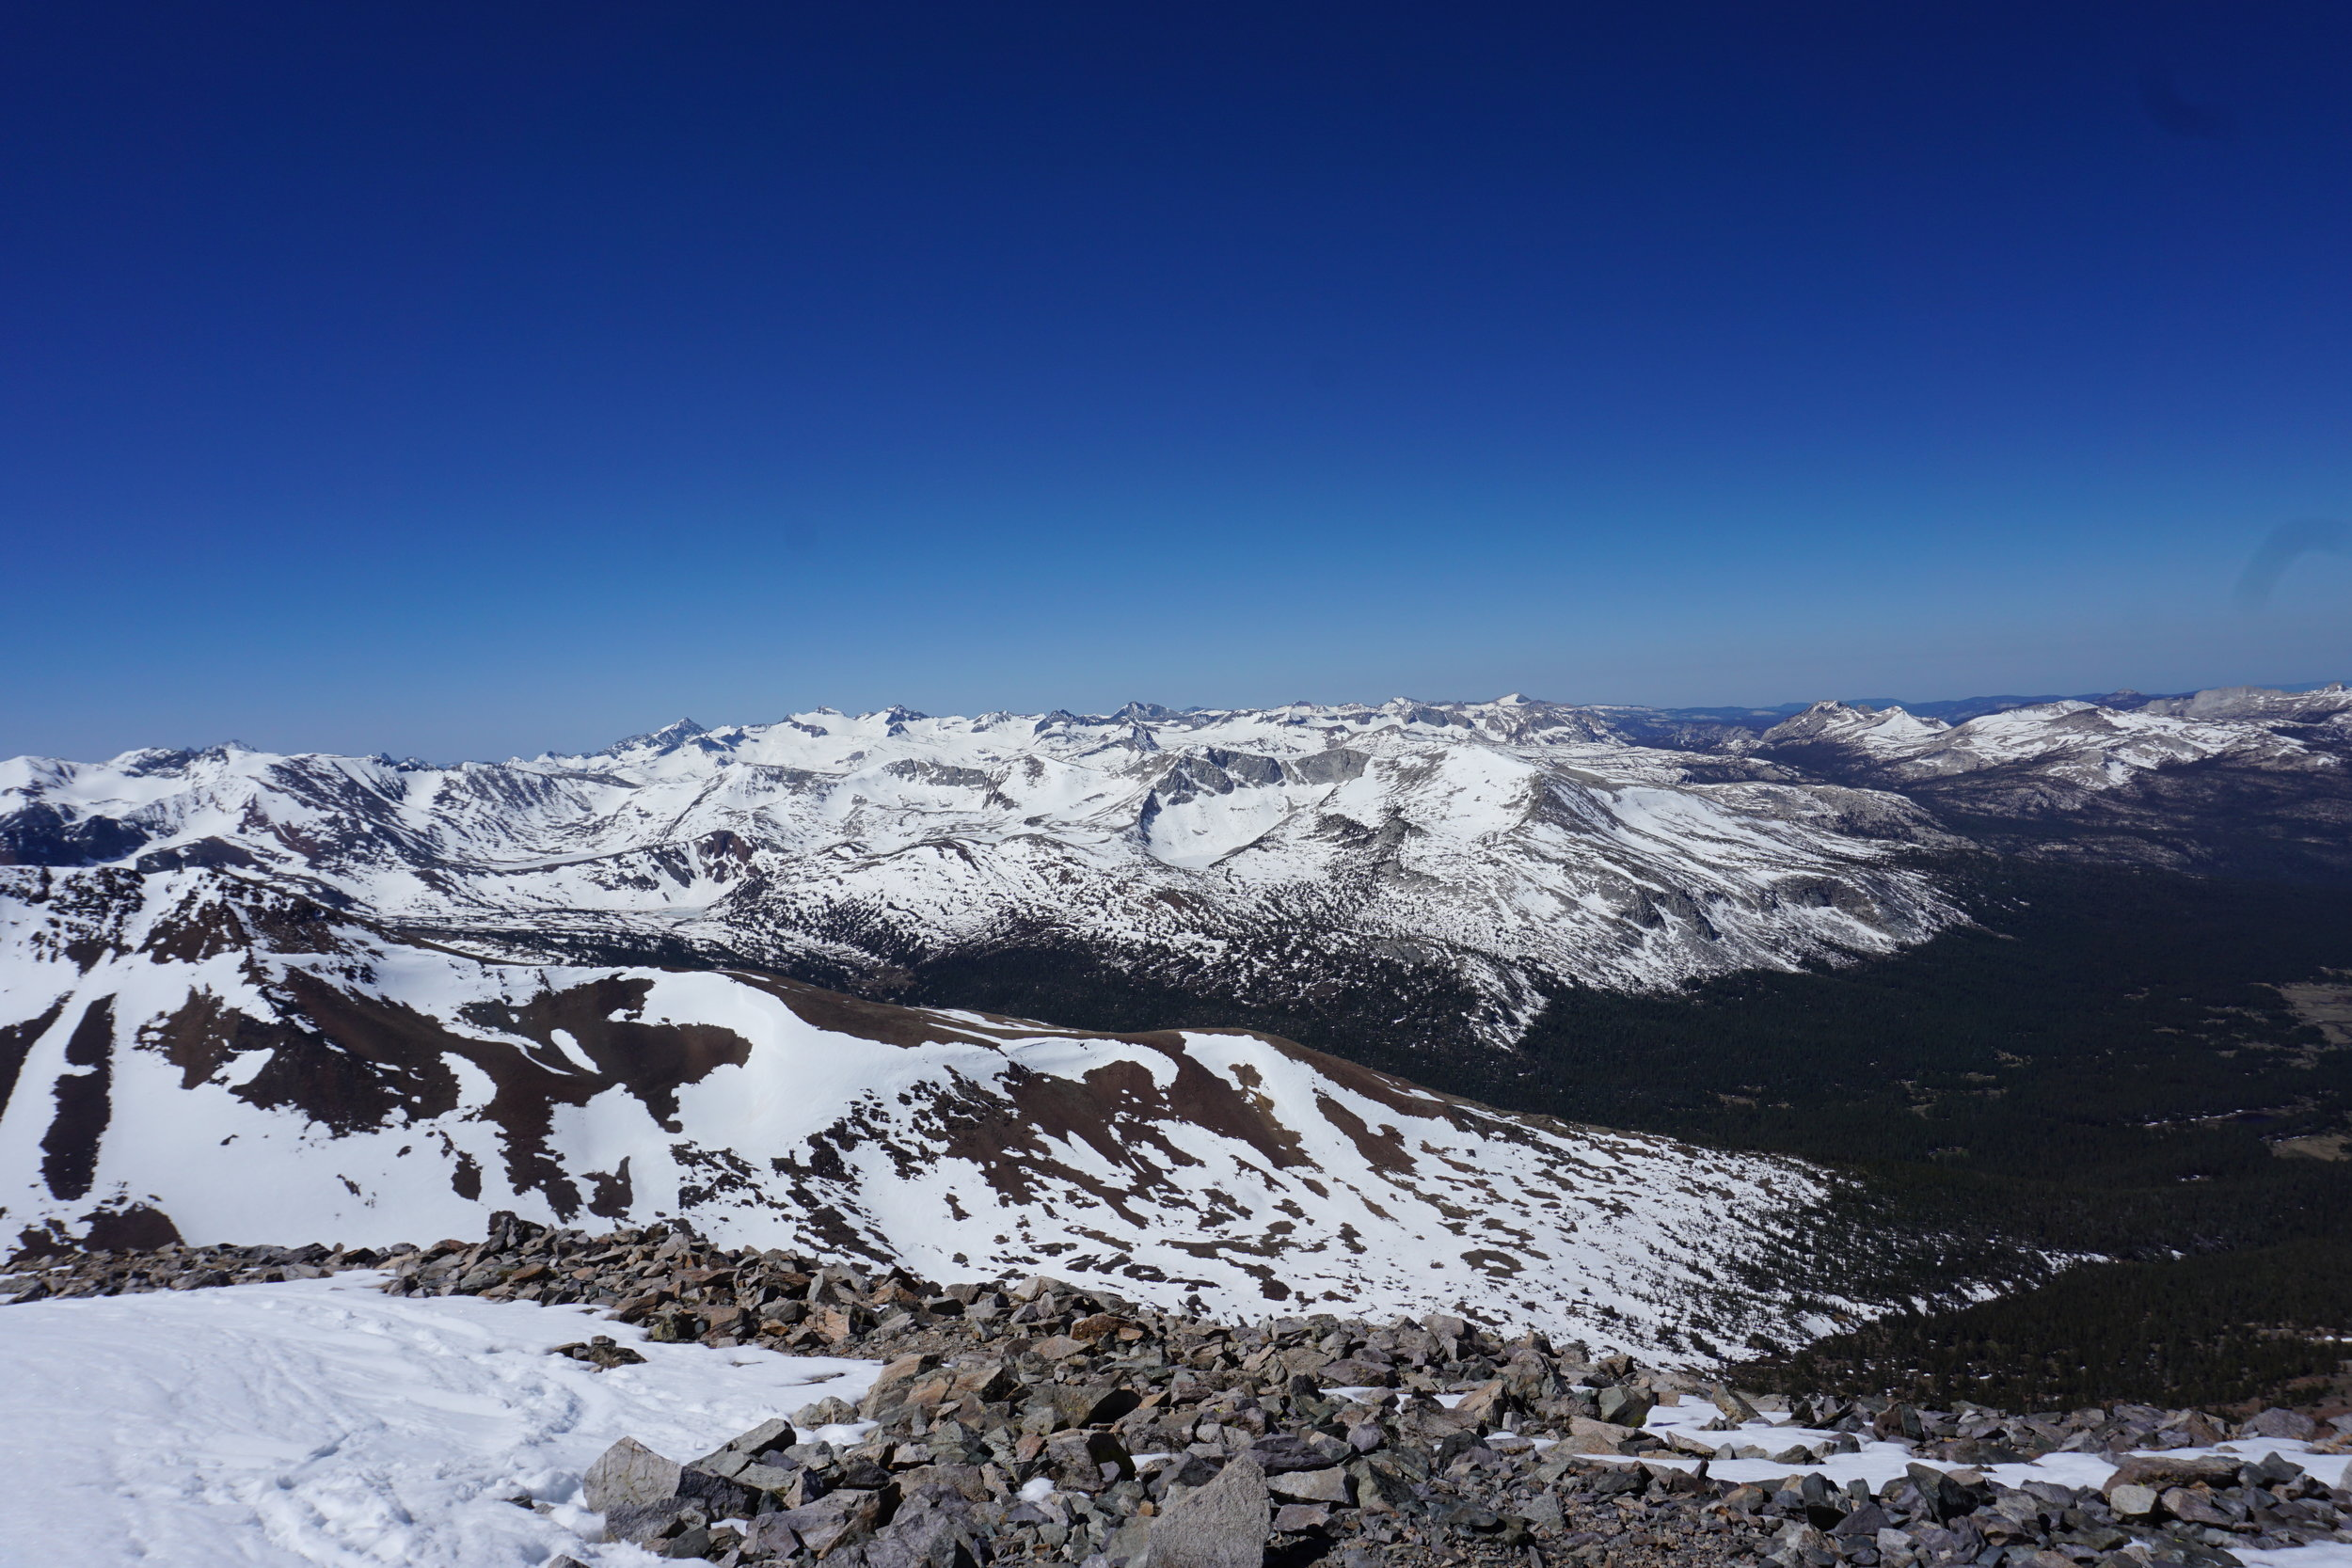 No matter which way one looks from the summit of Mount Dana, there is a great view.